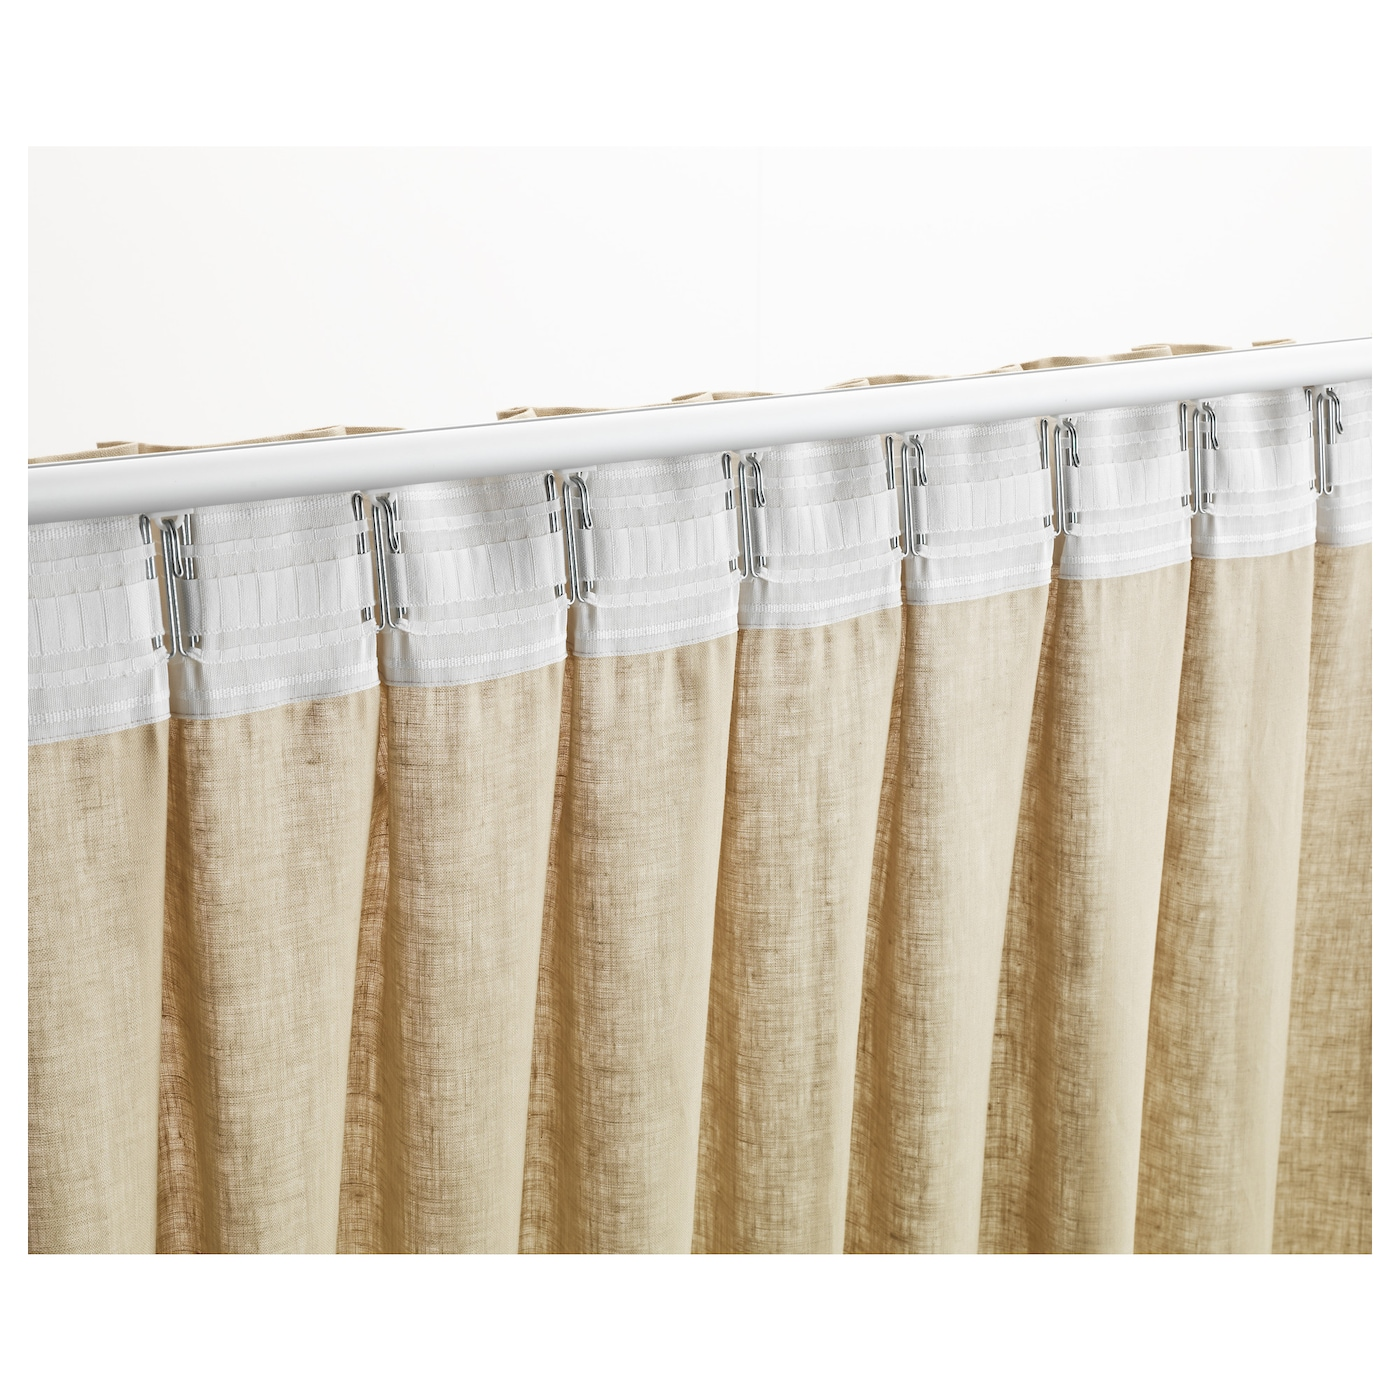 Kronill pleating tape white cm ikea for Enganches para cortinas